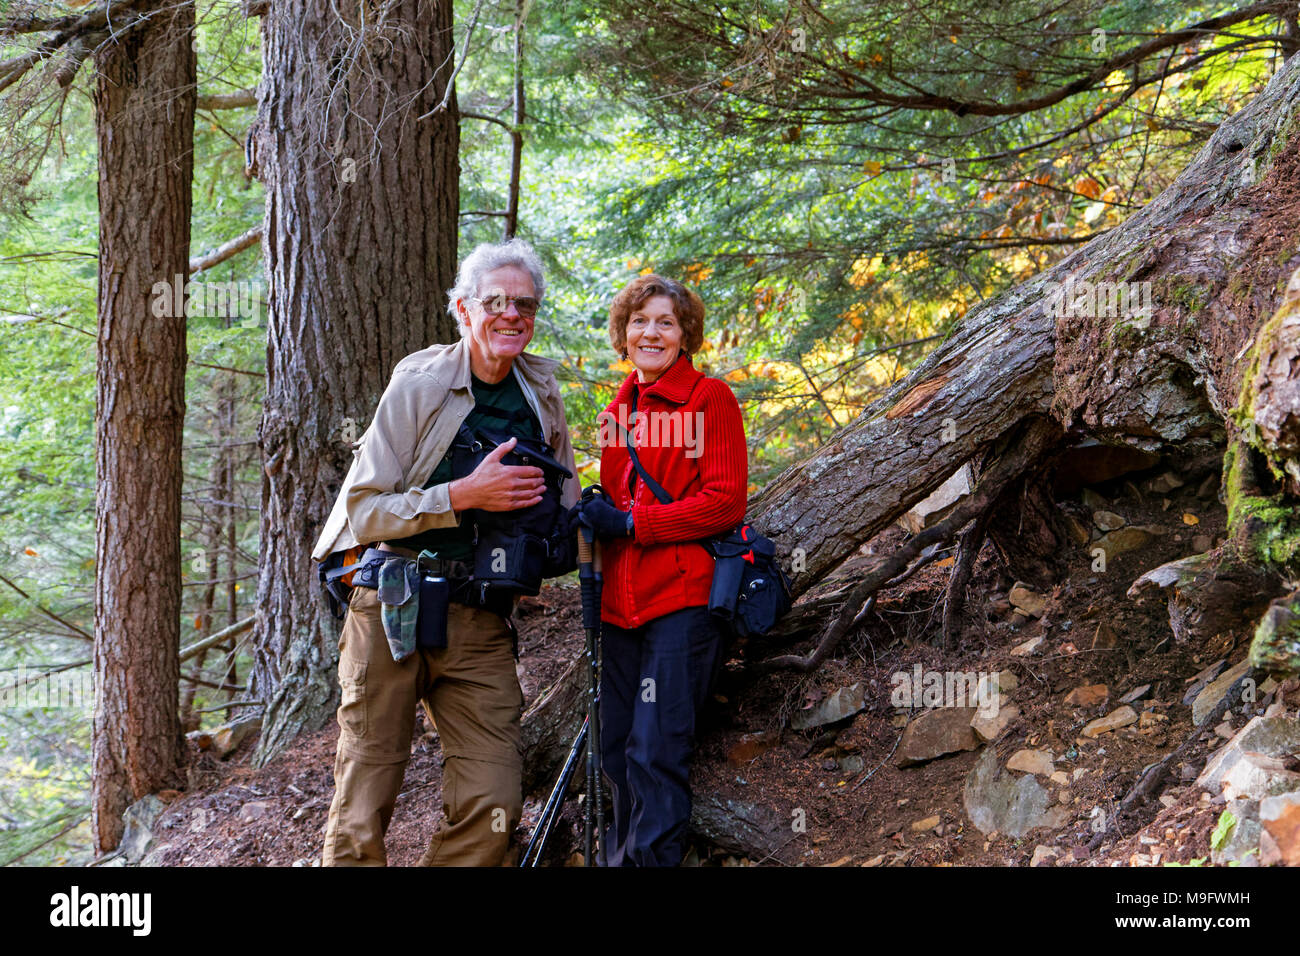 42,636.05955 Elderly married couple resting on a hike up Glacier Gulch Trail in an old growth conifer forest, near Smithers, British Columbia, Canada - Stock Image